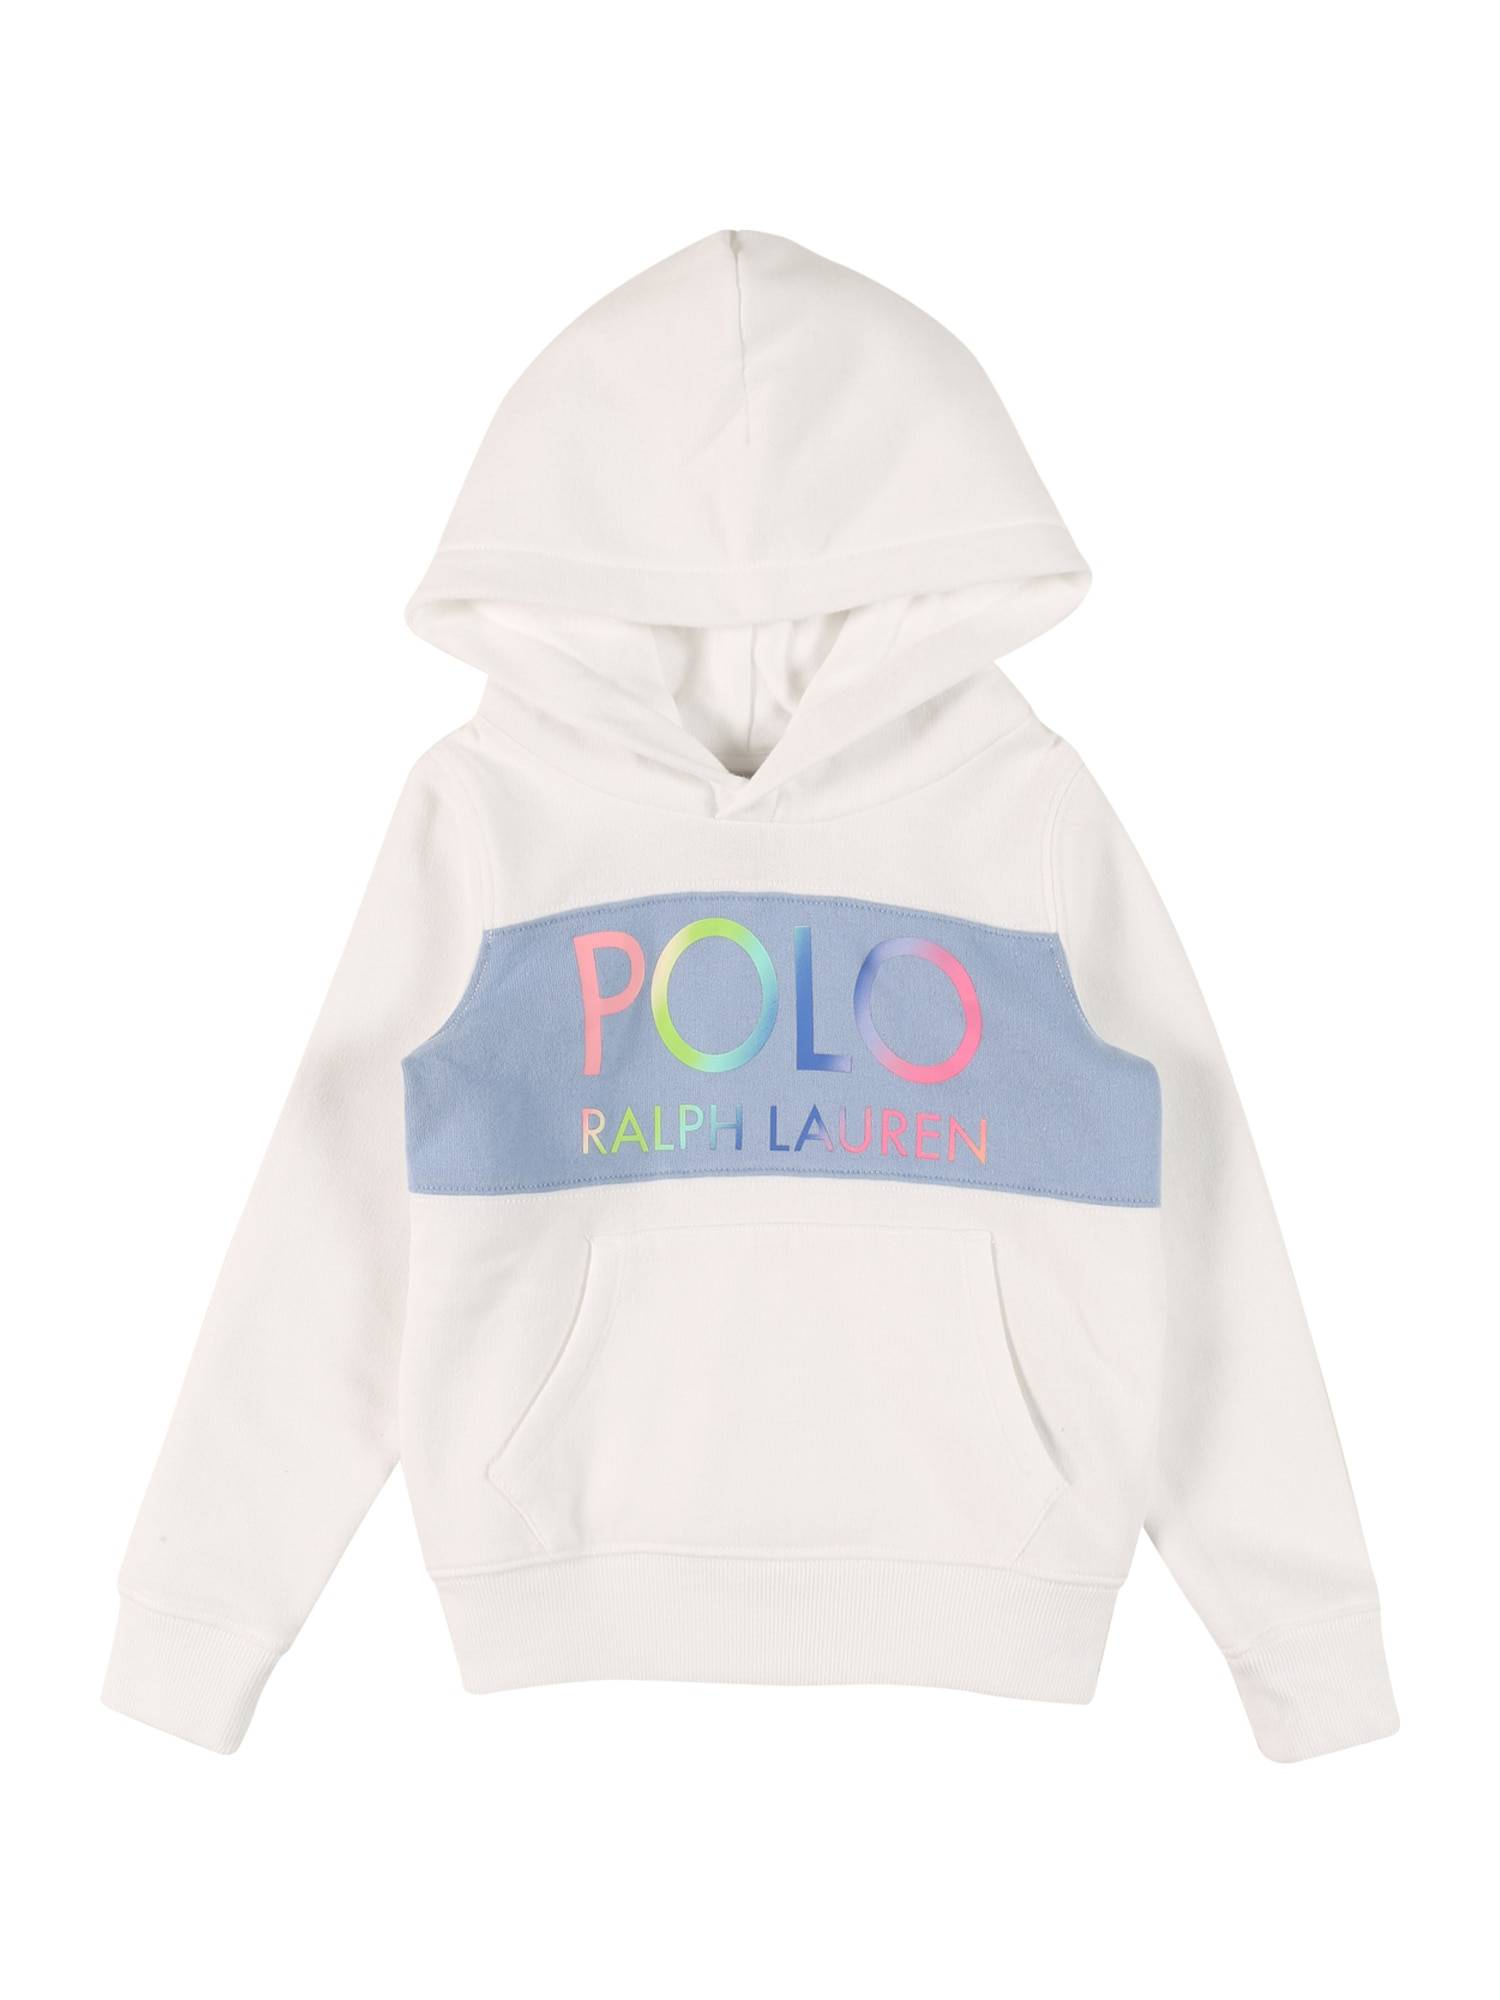 POLO RALPH LAUREN Sweat-shirt  - Blanc - Taille: 6 - girl